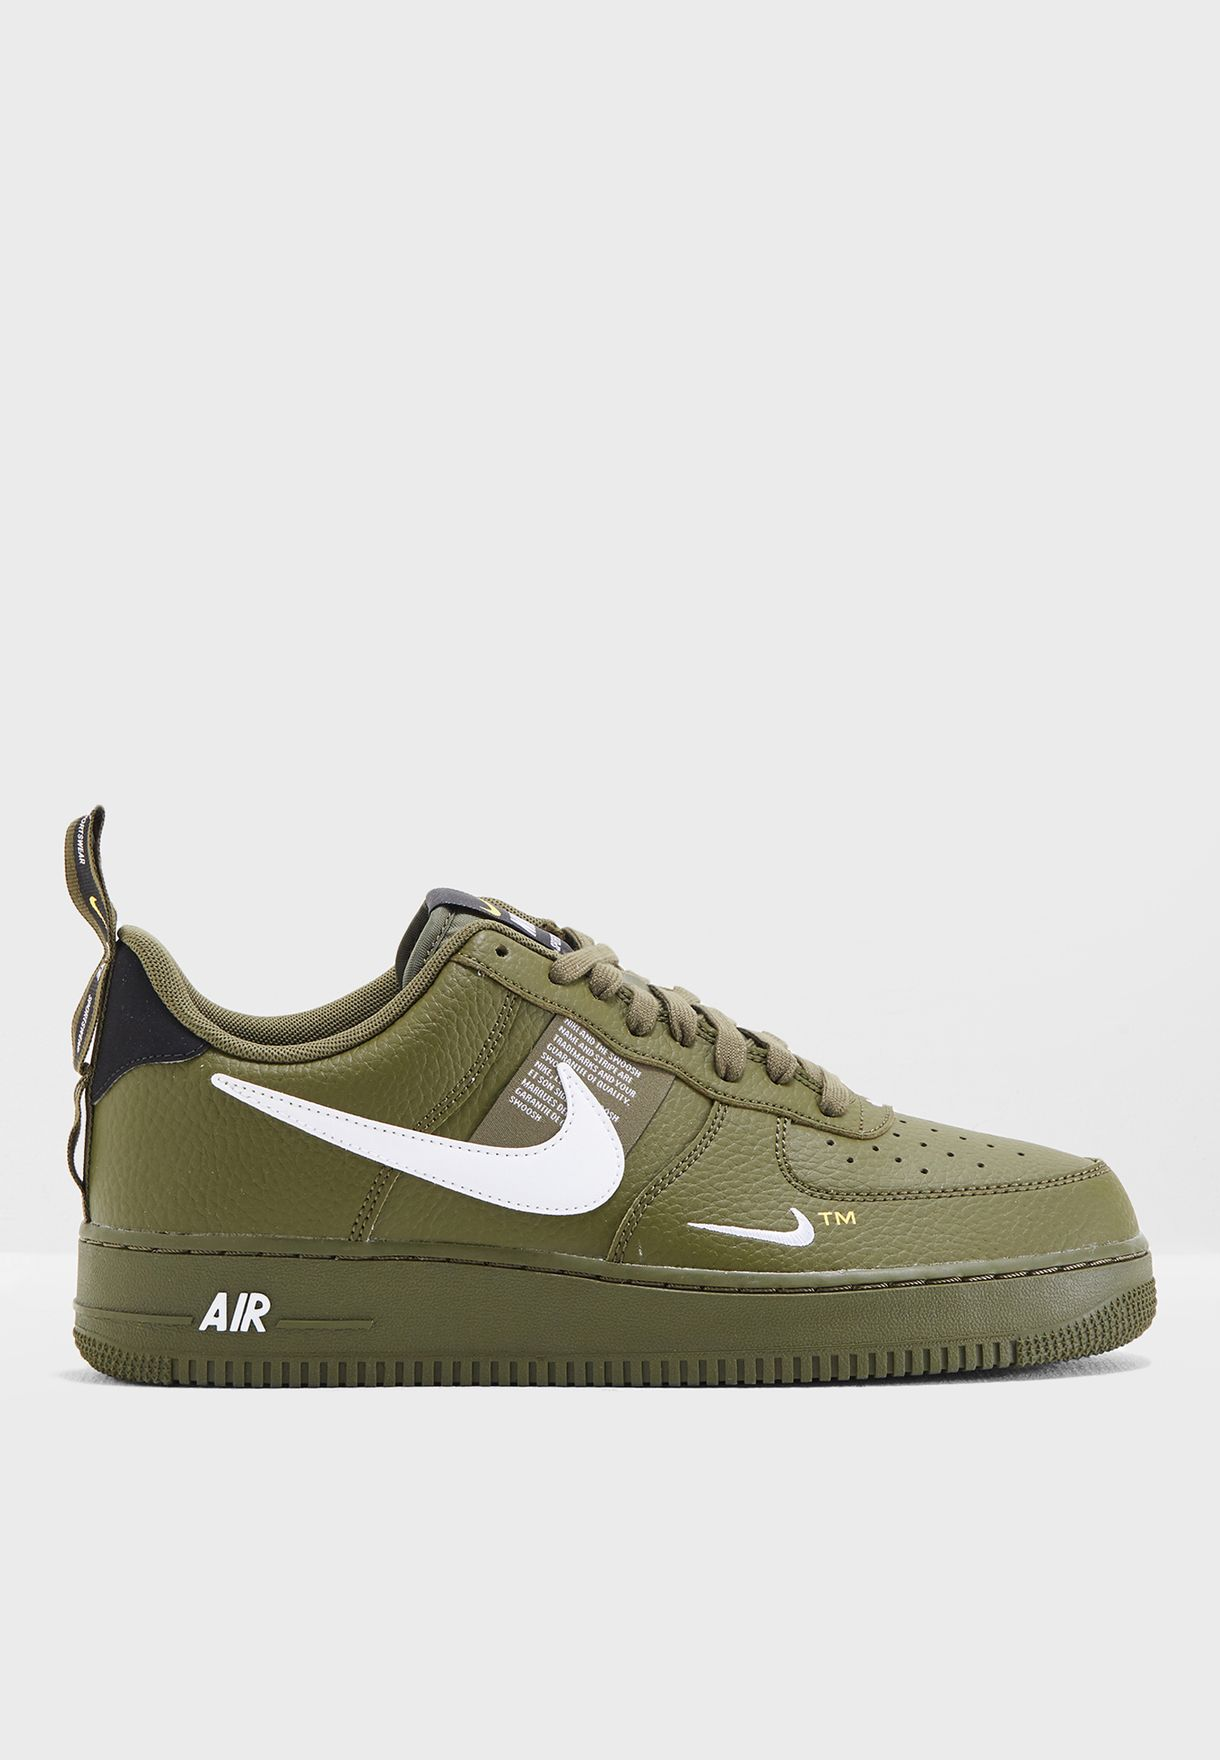 NIKE AIR FORCE 1 '07 LV8 UTILITY AJ7747 300 | Grün | 67,99